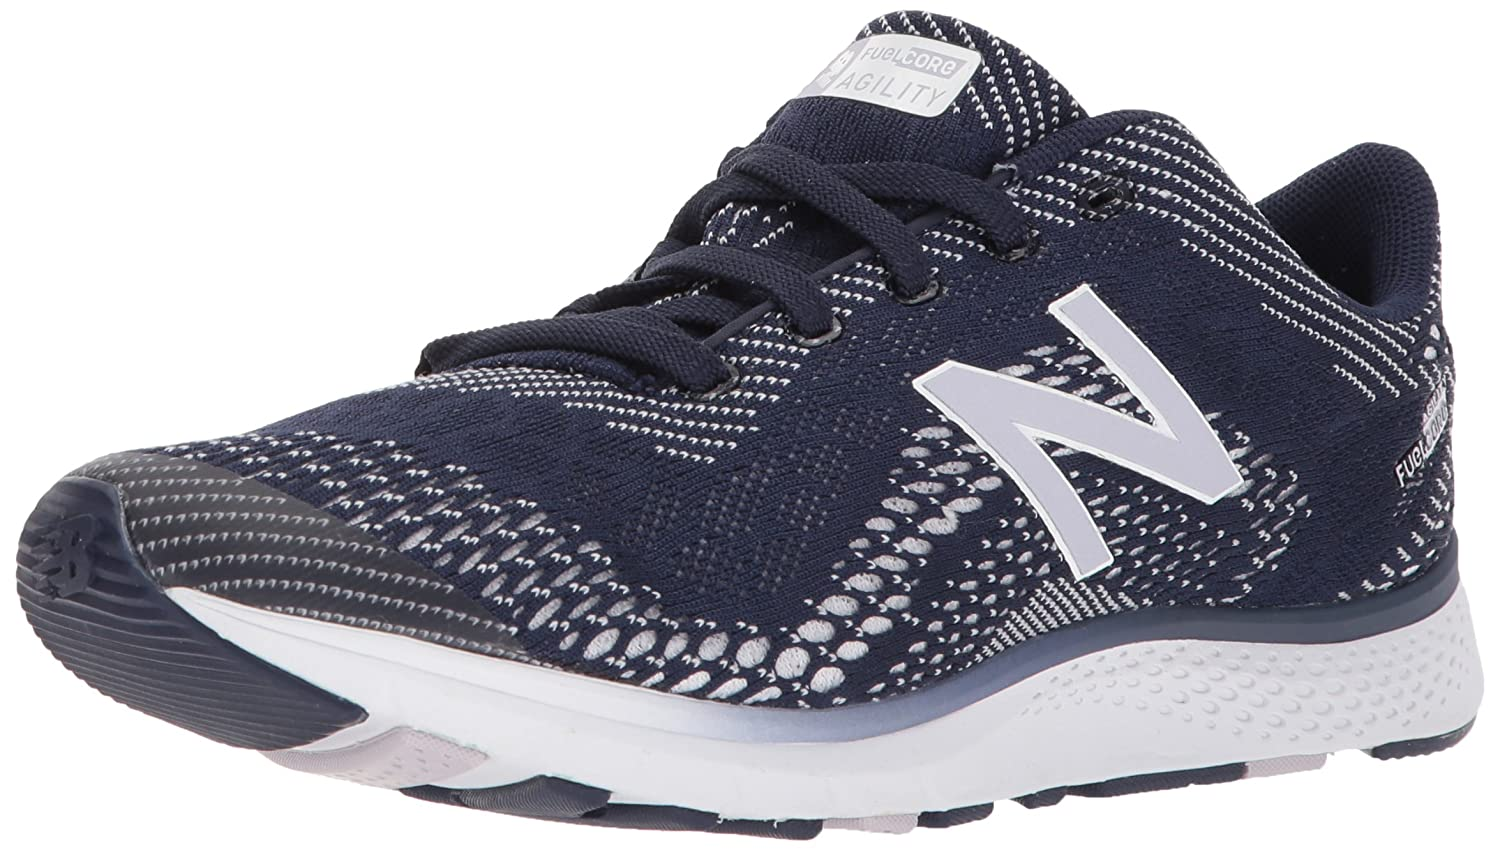 New Balance Women's FuelCore Agility v2 Cross Trainer B06XRVN3Q2 9.5 D US|Pigment/Thistle